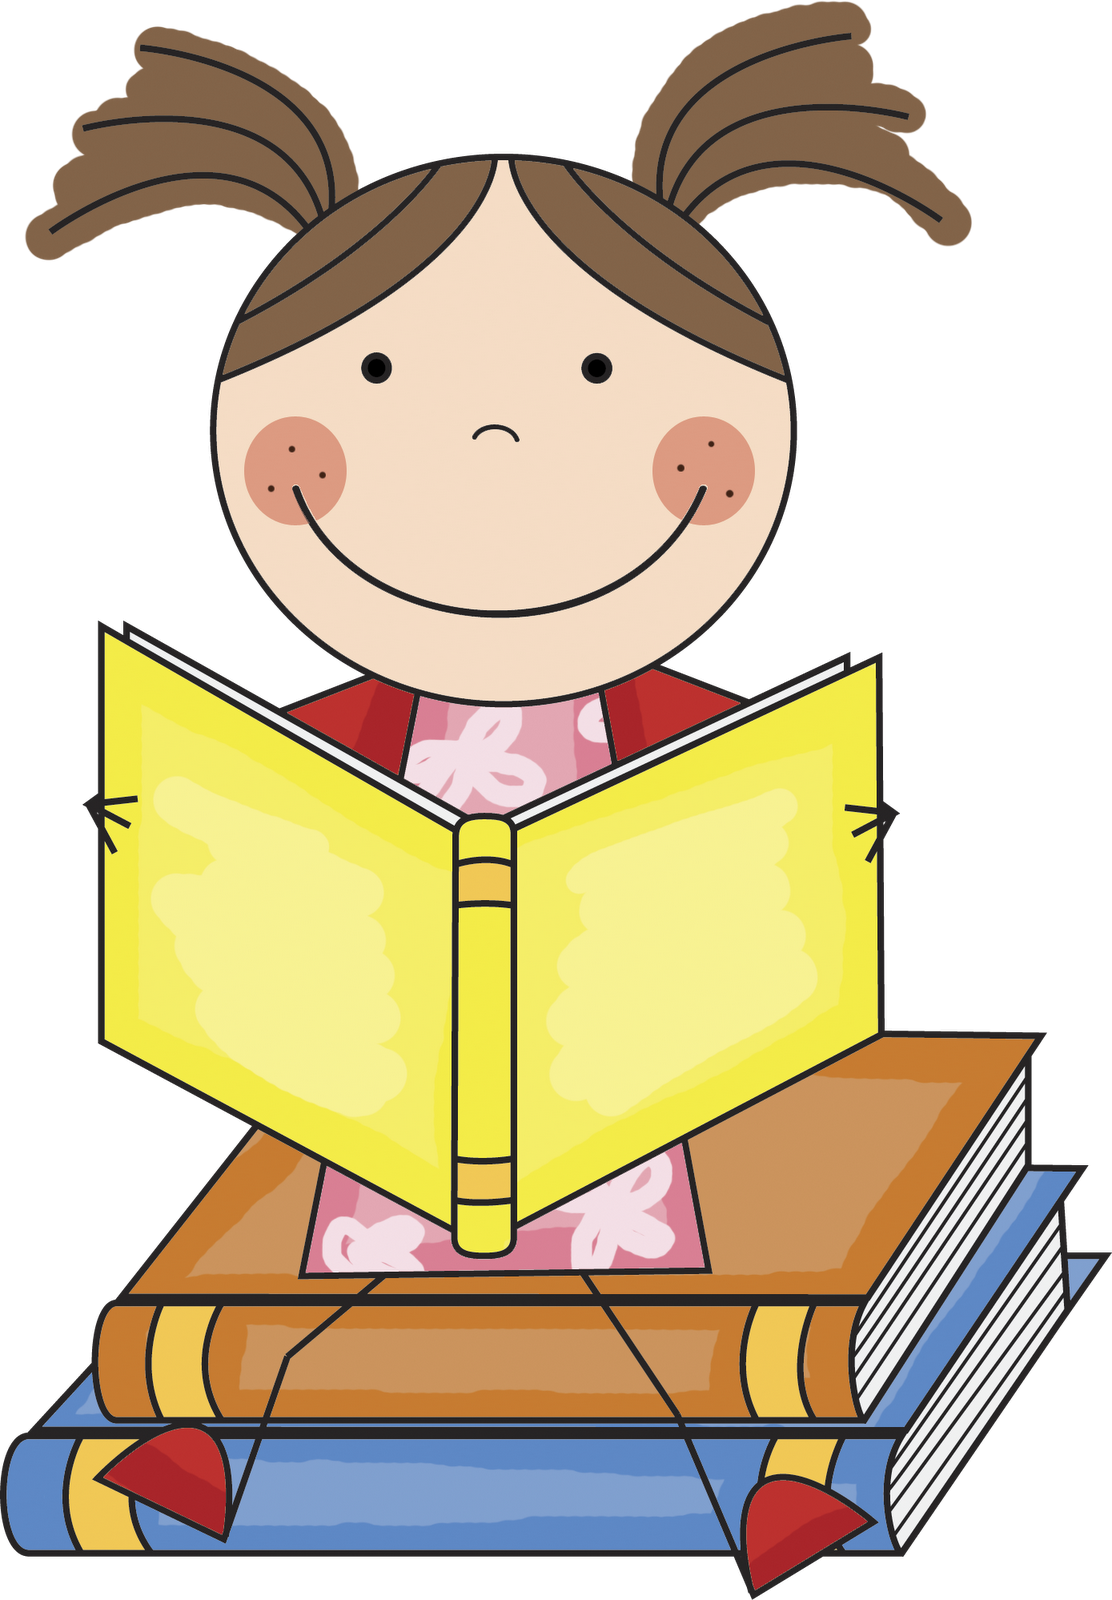 Kids Reading Books Clip Art 1112 x 1600